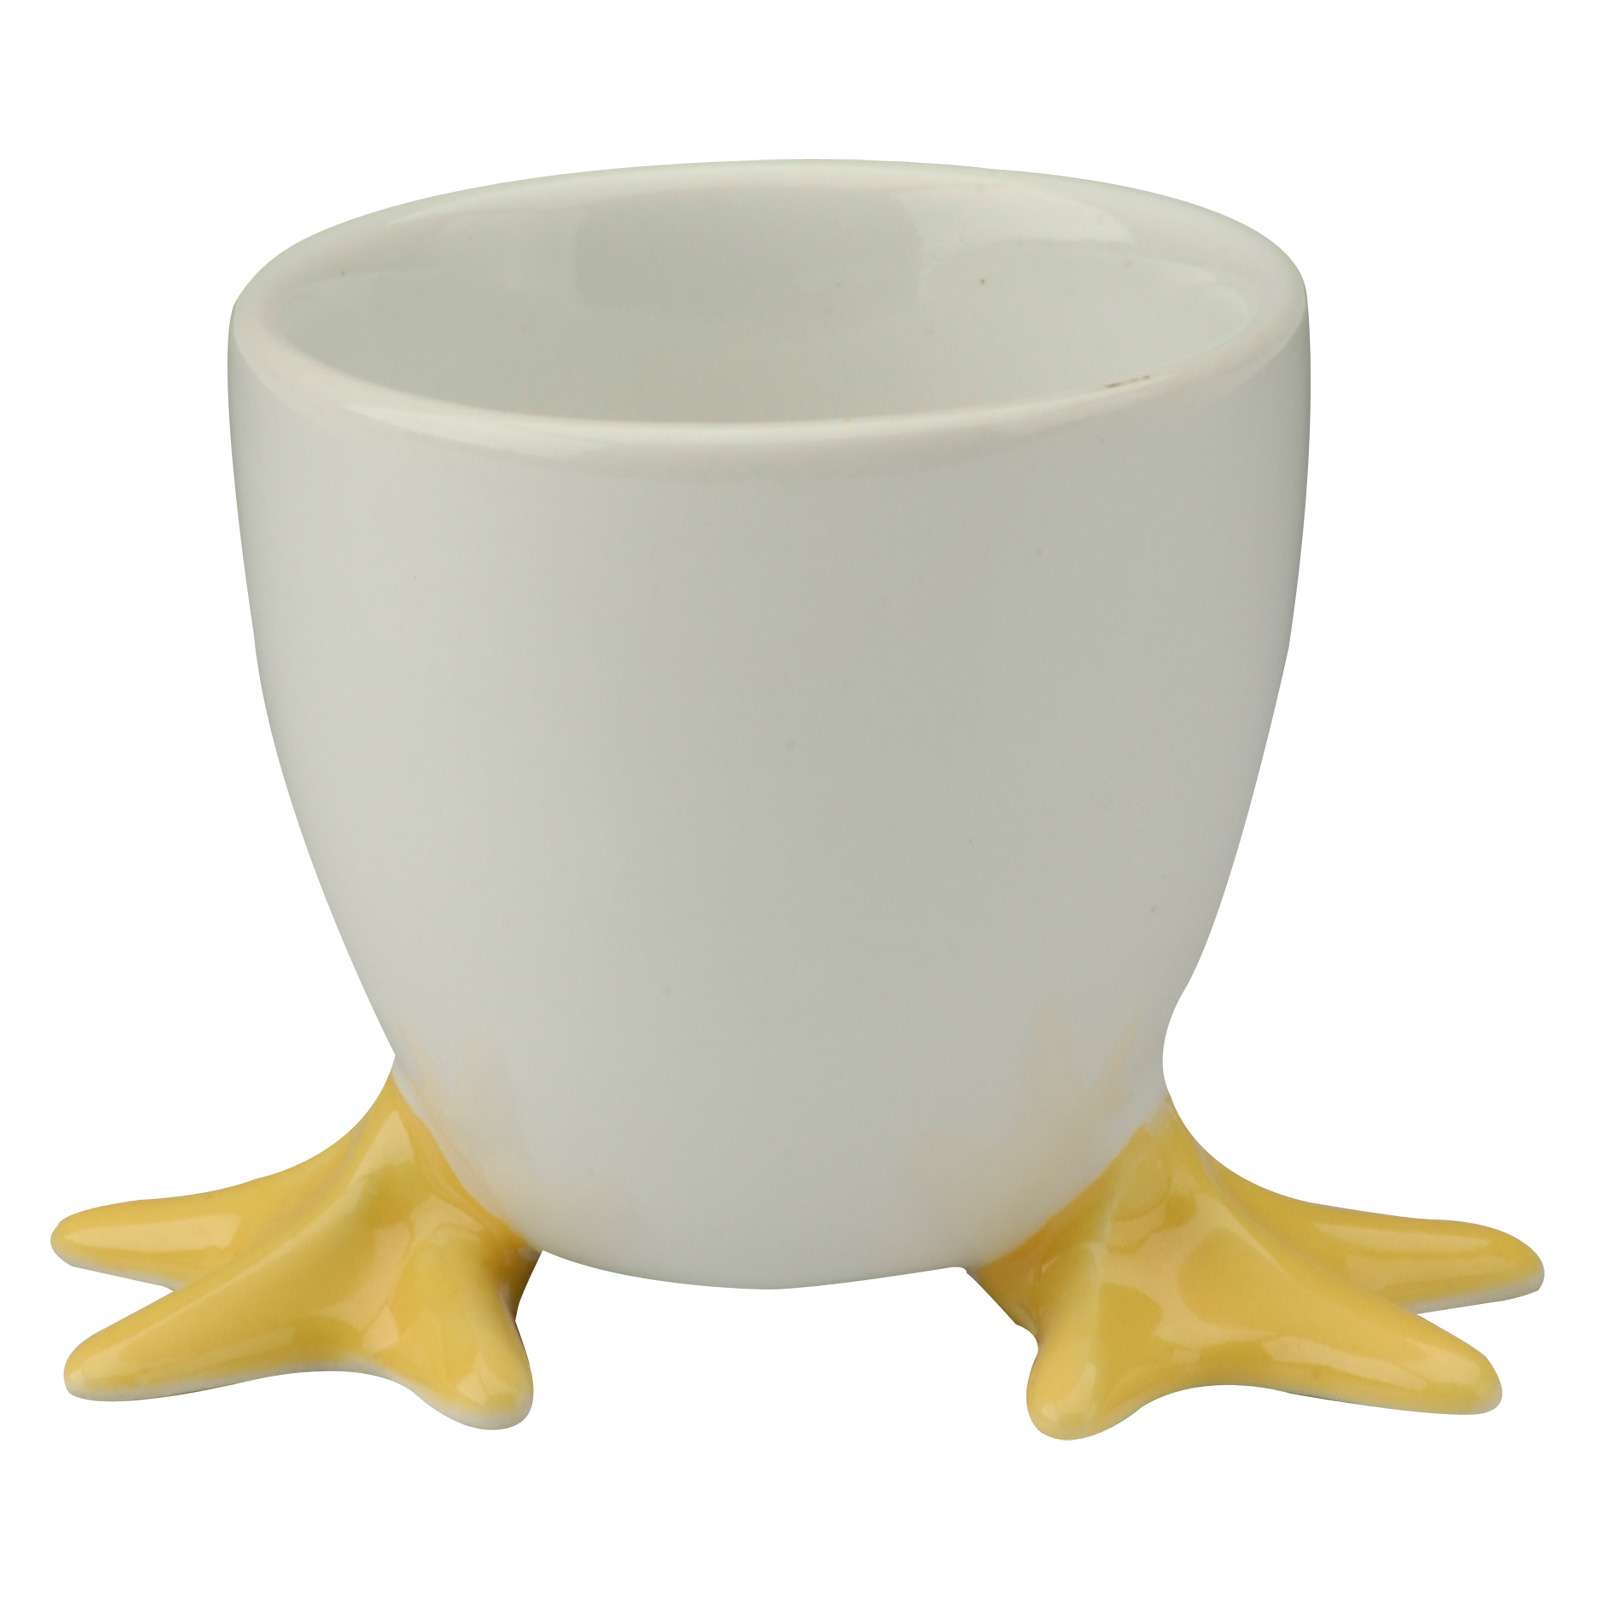 Chicken Feet Egg Cup with Yellow Feet